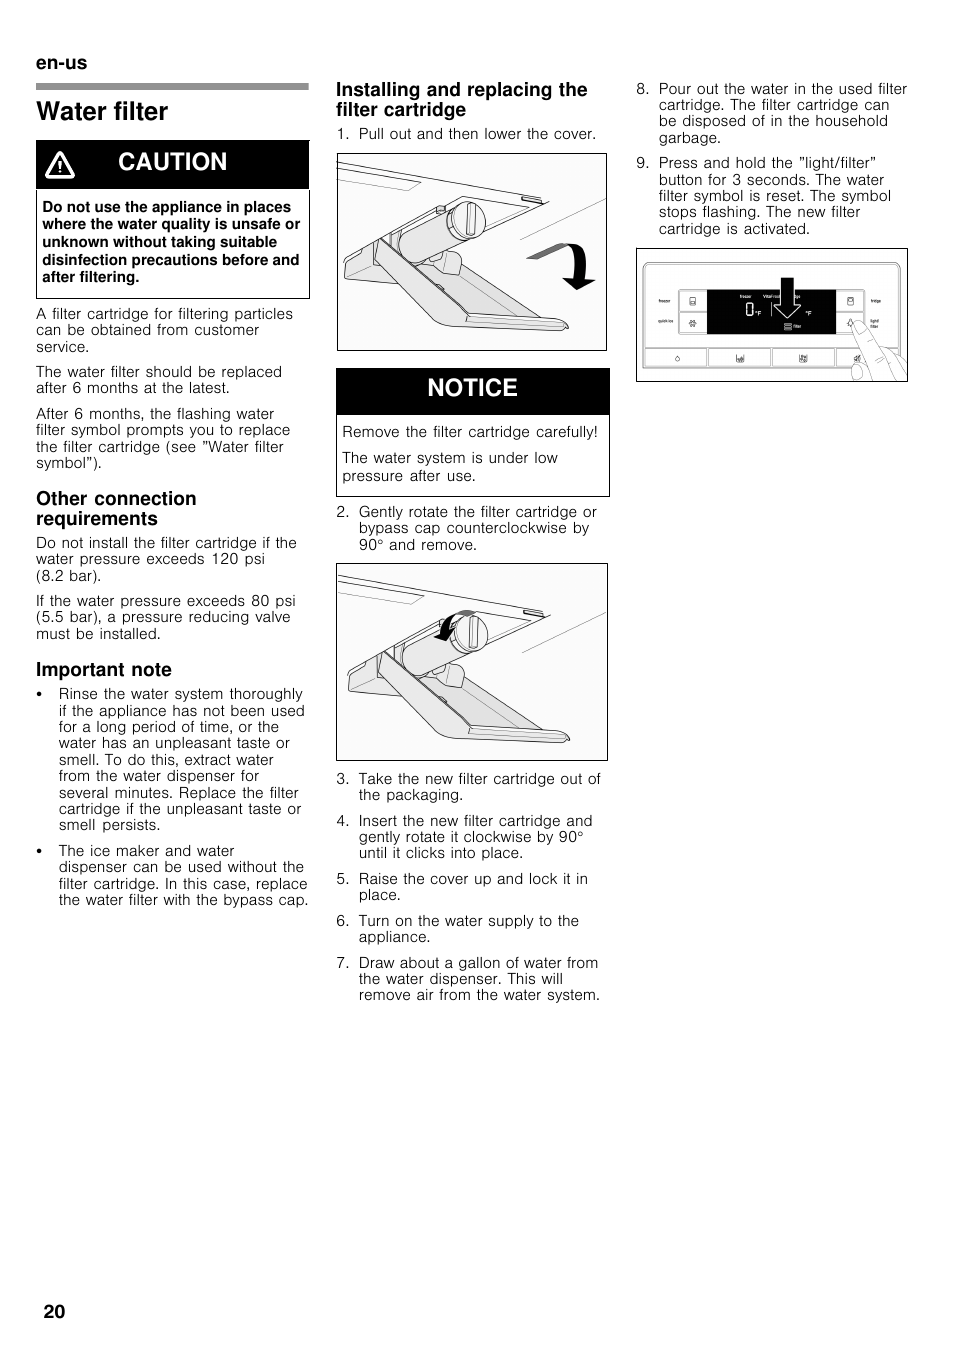 Water Filter Caution Notice Bosch B26ft70sns User Manual Page